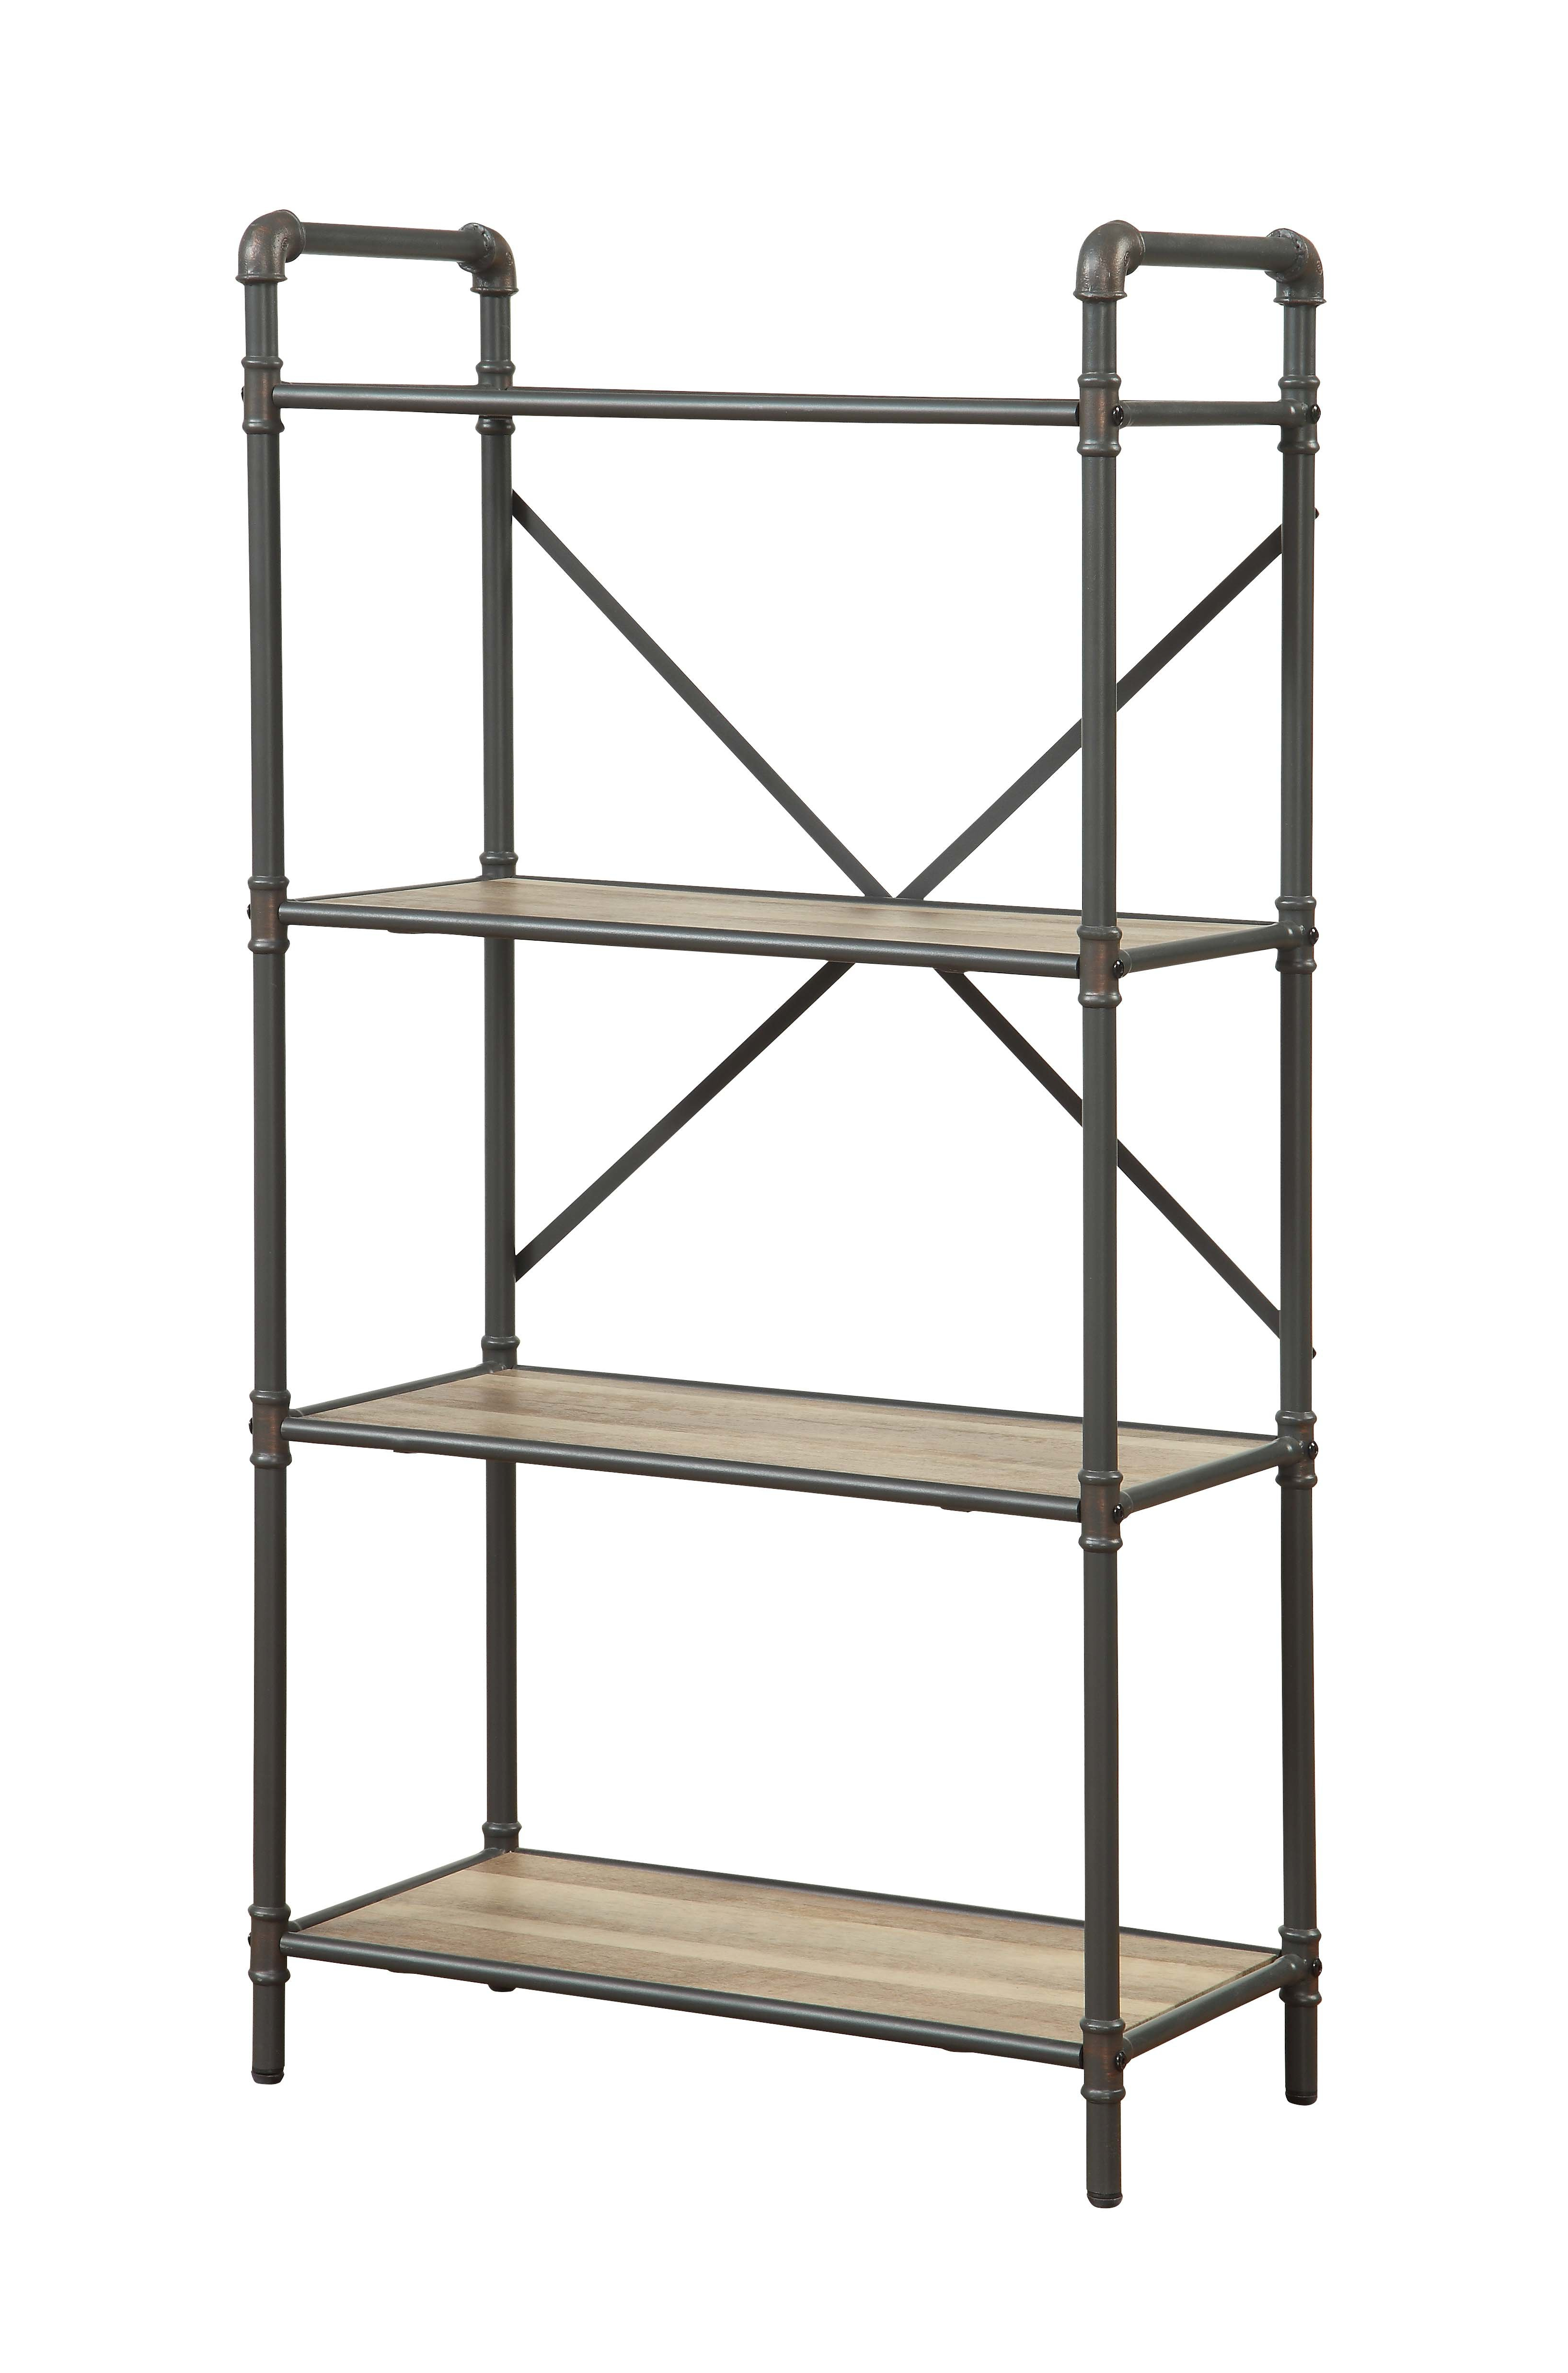 Swindell Etagere Bookcases For 2019 Christofor Industrial Etagere Bookcase (View 7 of 20)